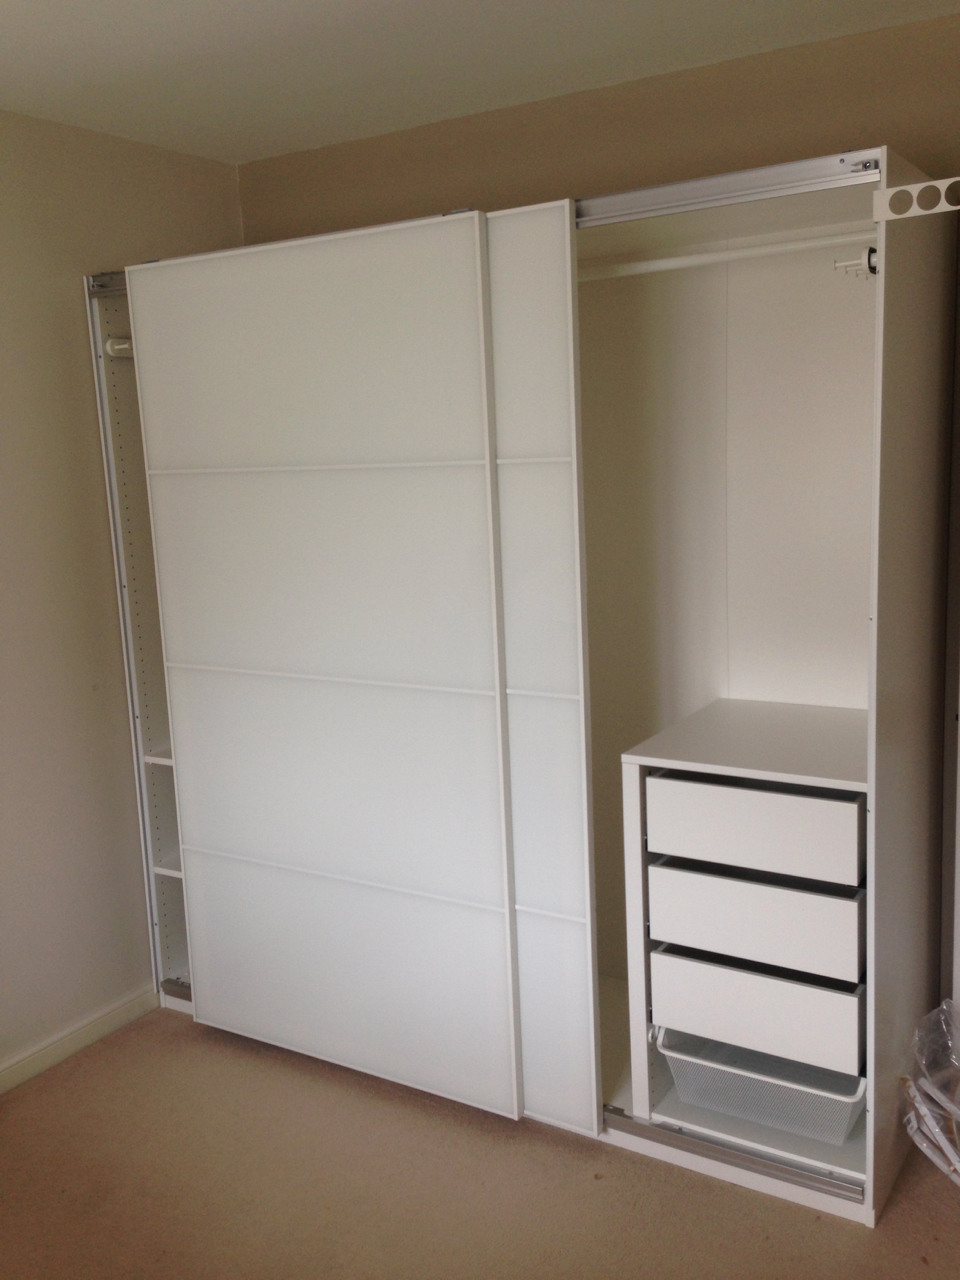 Ikea PAX sliding white glass Farvik wardrobes interiors drawers assembled by www.norwichflatpack.co.